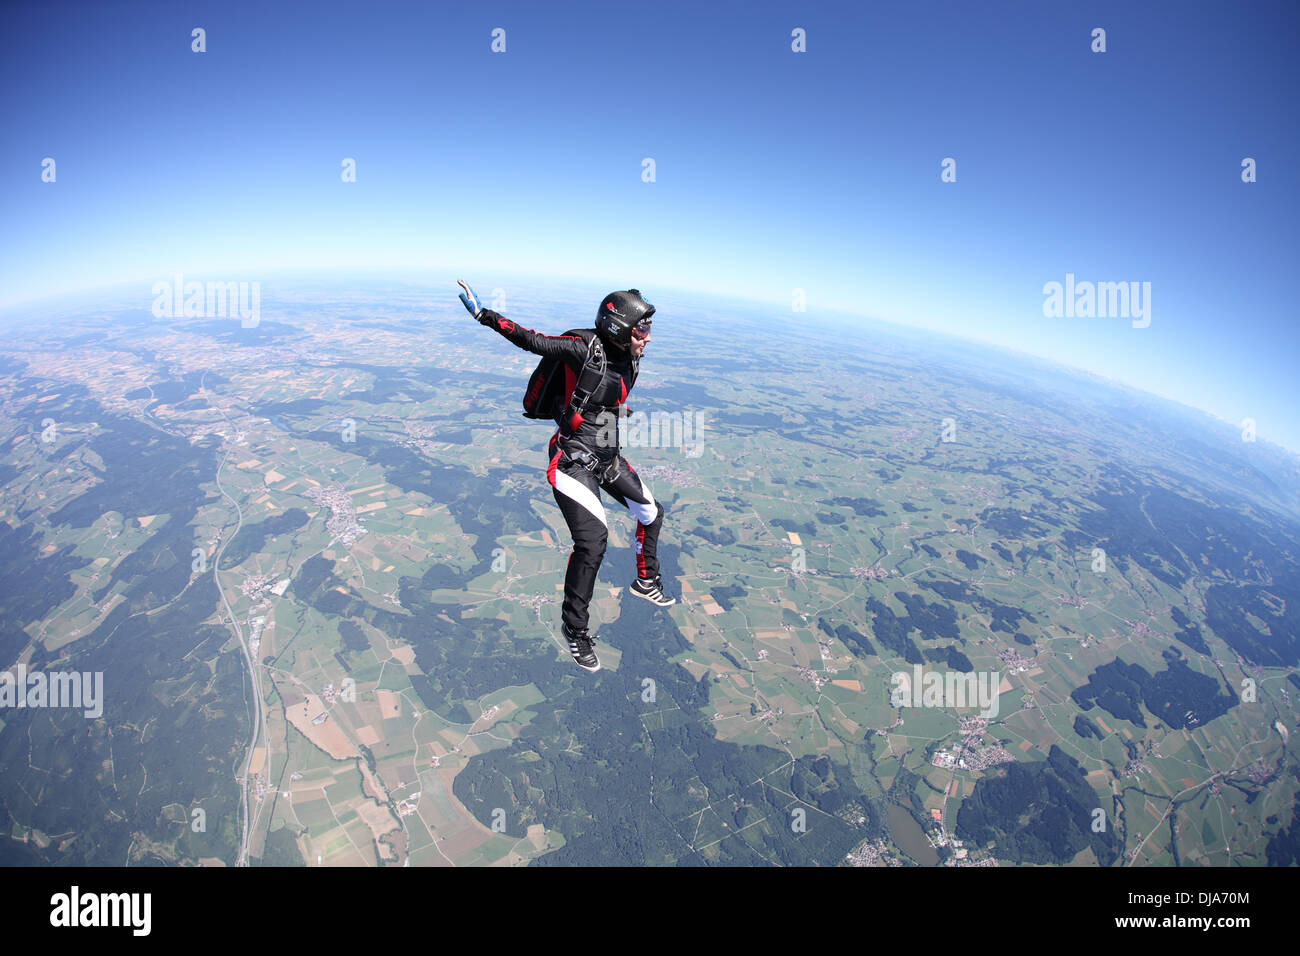 Free Falling Stock Photos & Free Falling Stock Images - Page